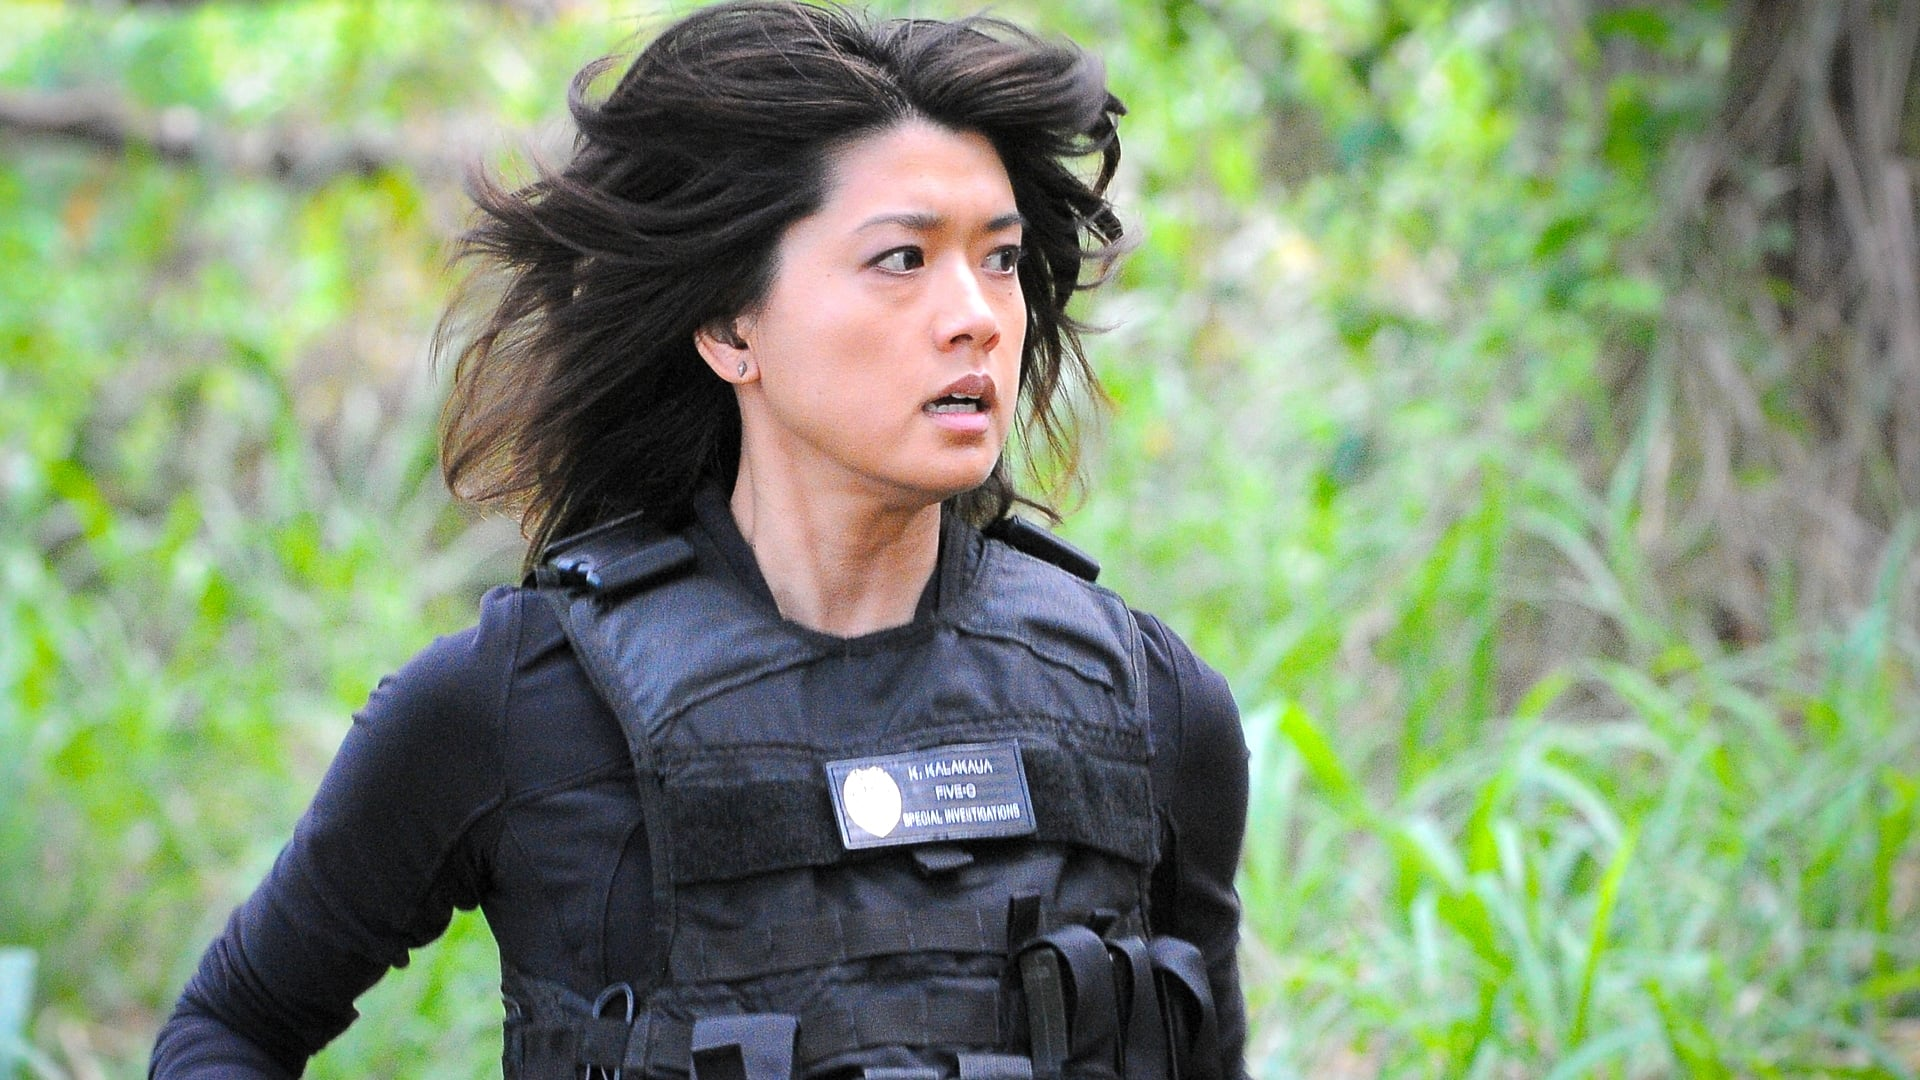 Hawaii Five-0 - Season 6 Episode 21 : Ka Pono Ku'oko'a (The Cost of Freedom)